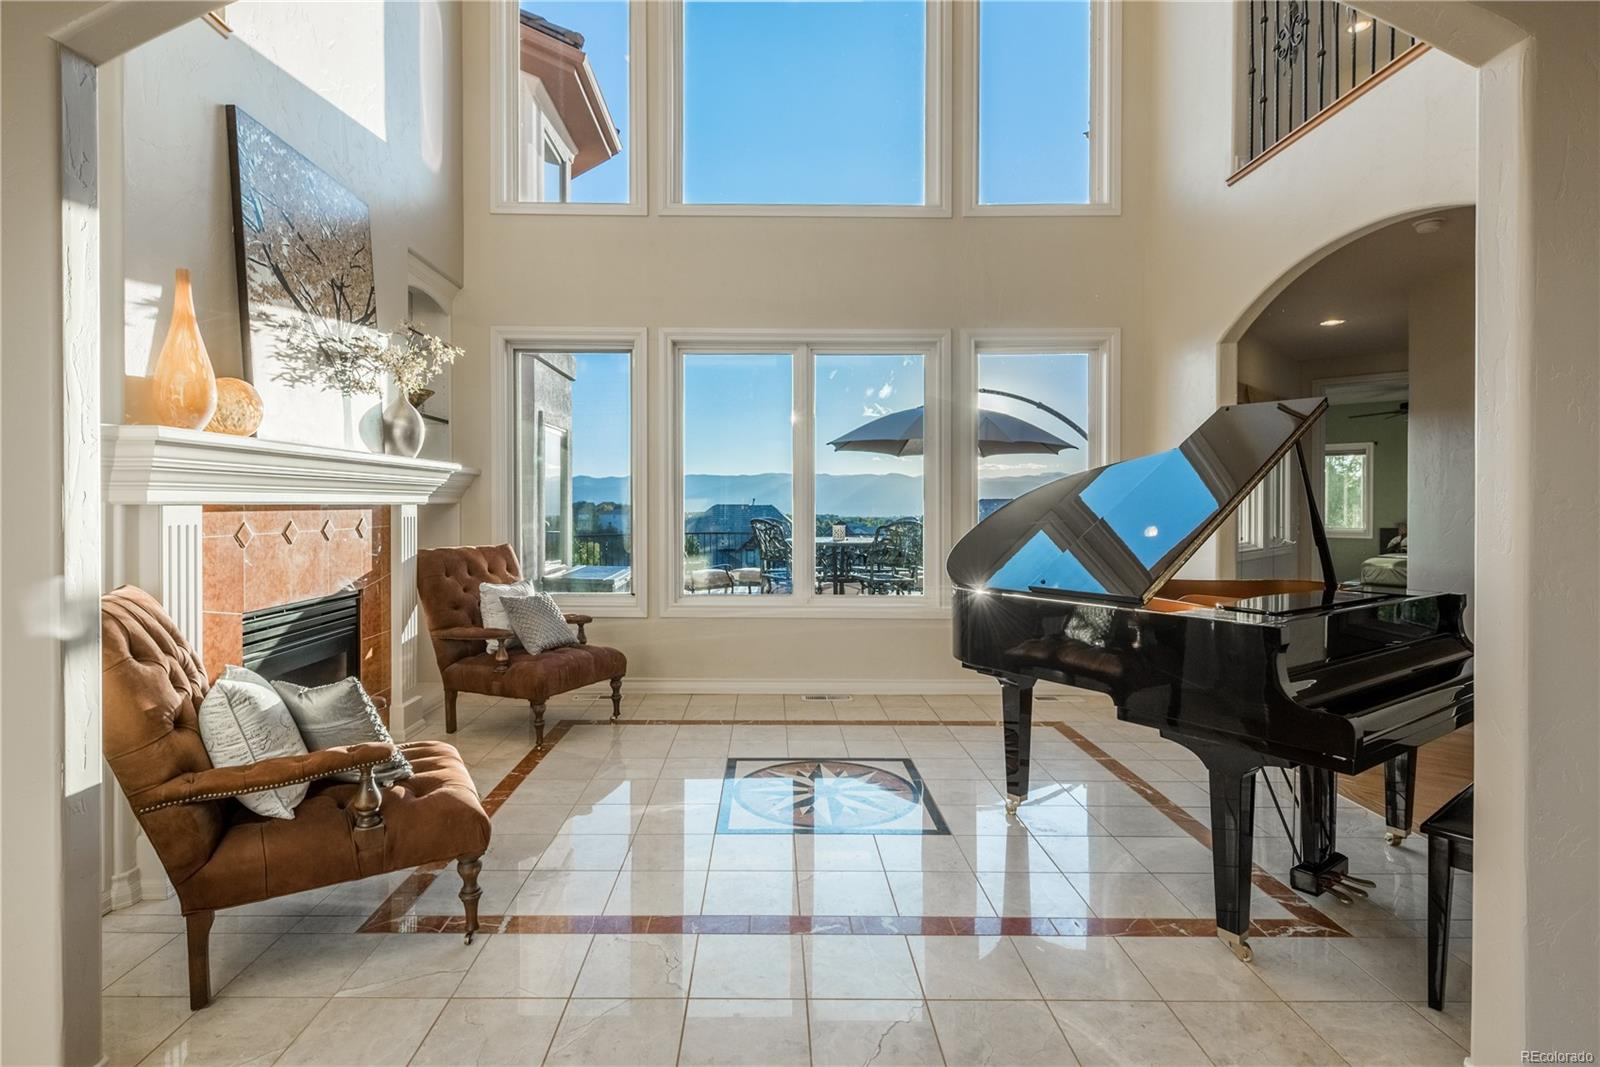 Formal two story living room.